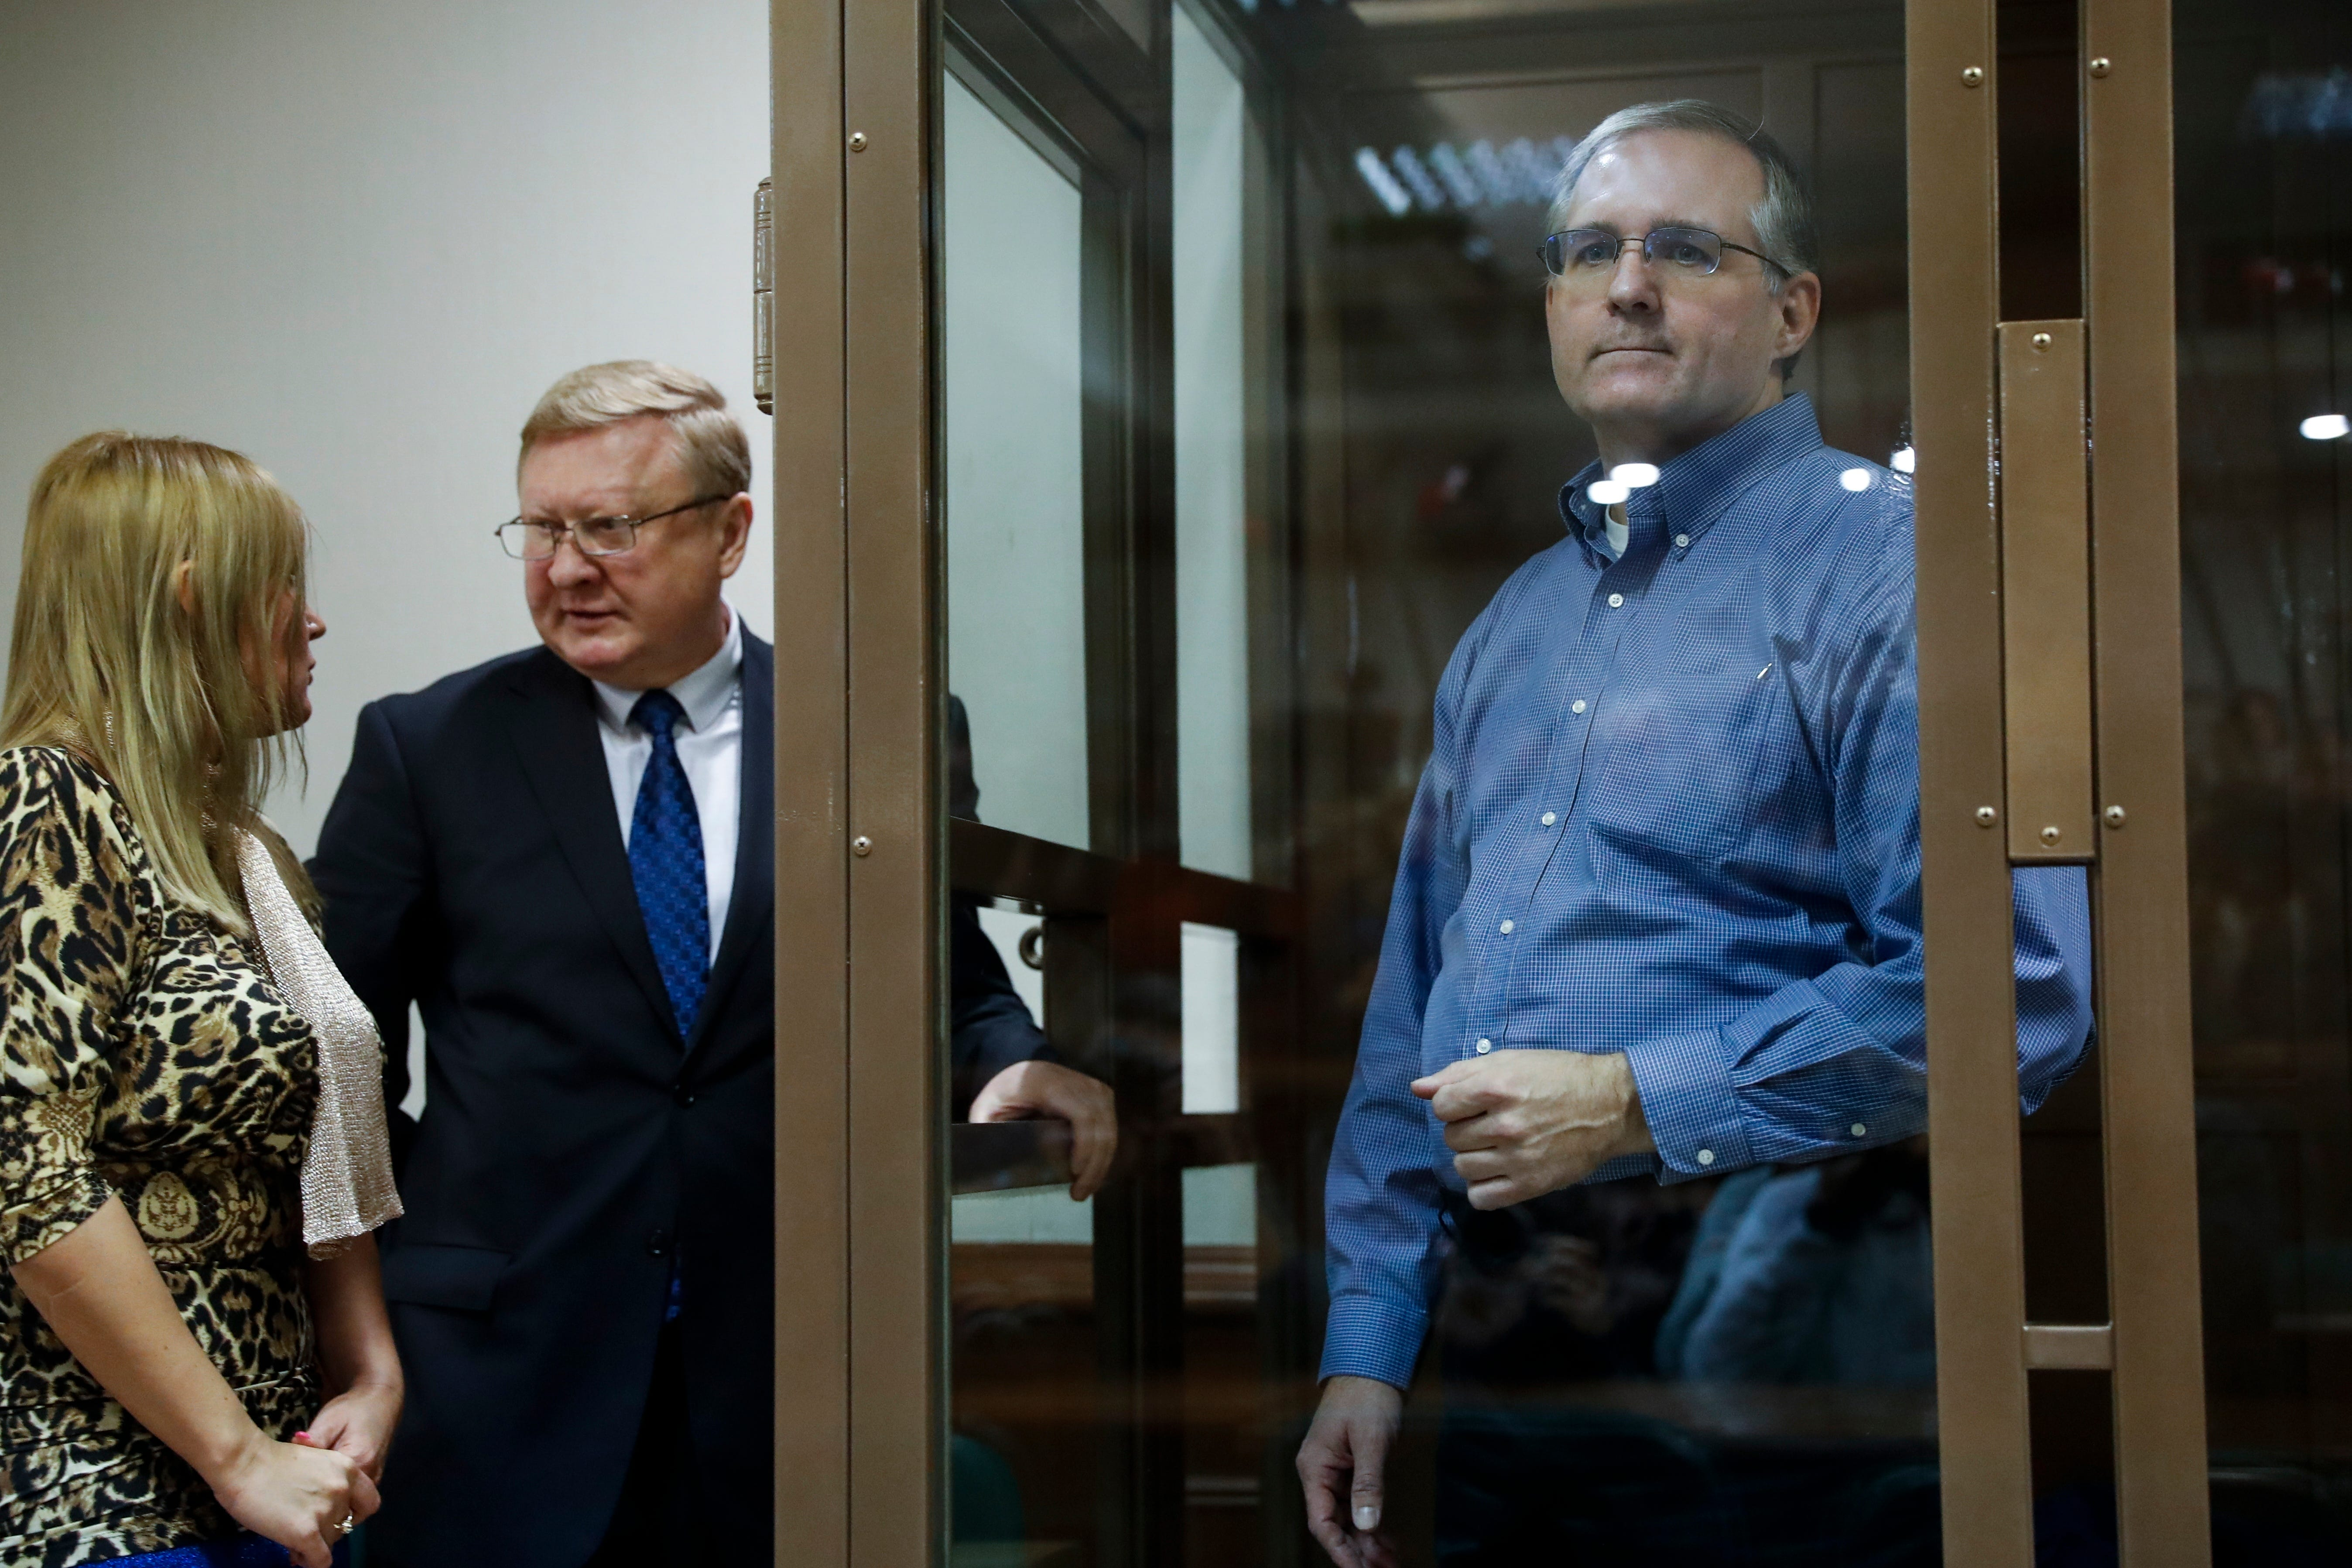 Paul Whelan, a former U.S. Marine who was arrested in Moscow at the end of last year, right, looks through a glass cage as his lawyers talk to each other in a court room in Moscow, Russia, Jan. 22, 2019. The lawyer for Paul Whelan who is being held in Moscow on suspicion of spying, said that classified Russian materials were found on him when he was arrested.